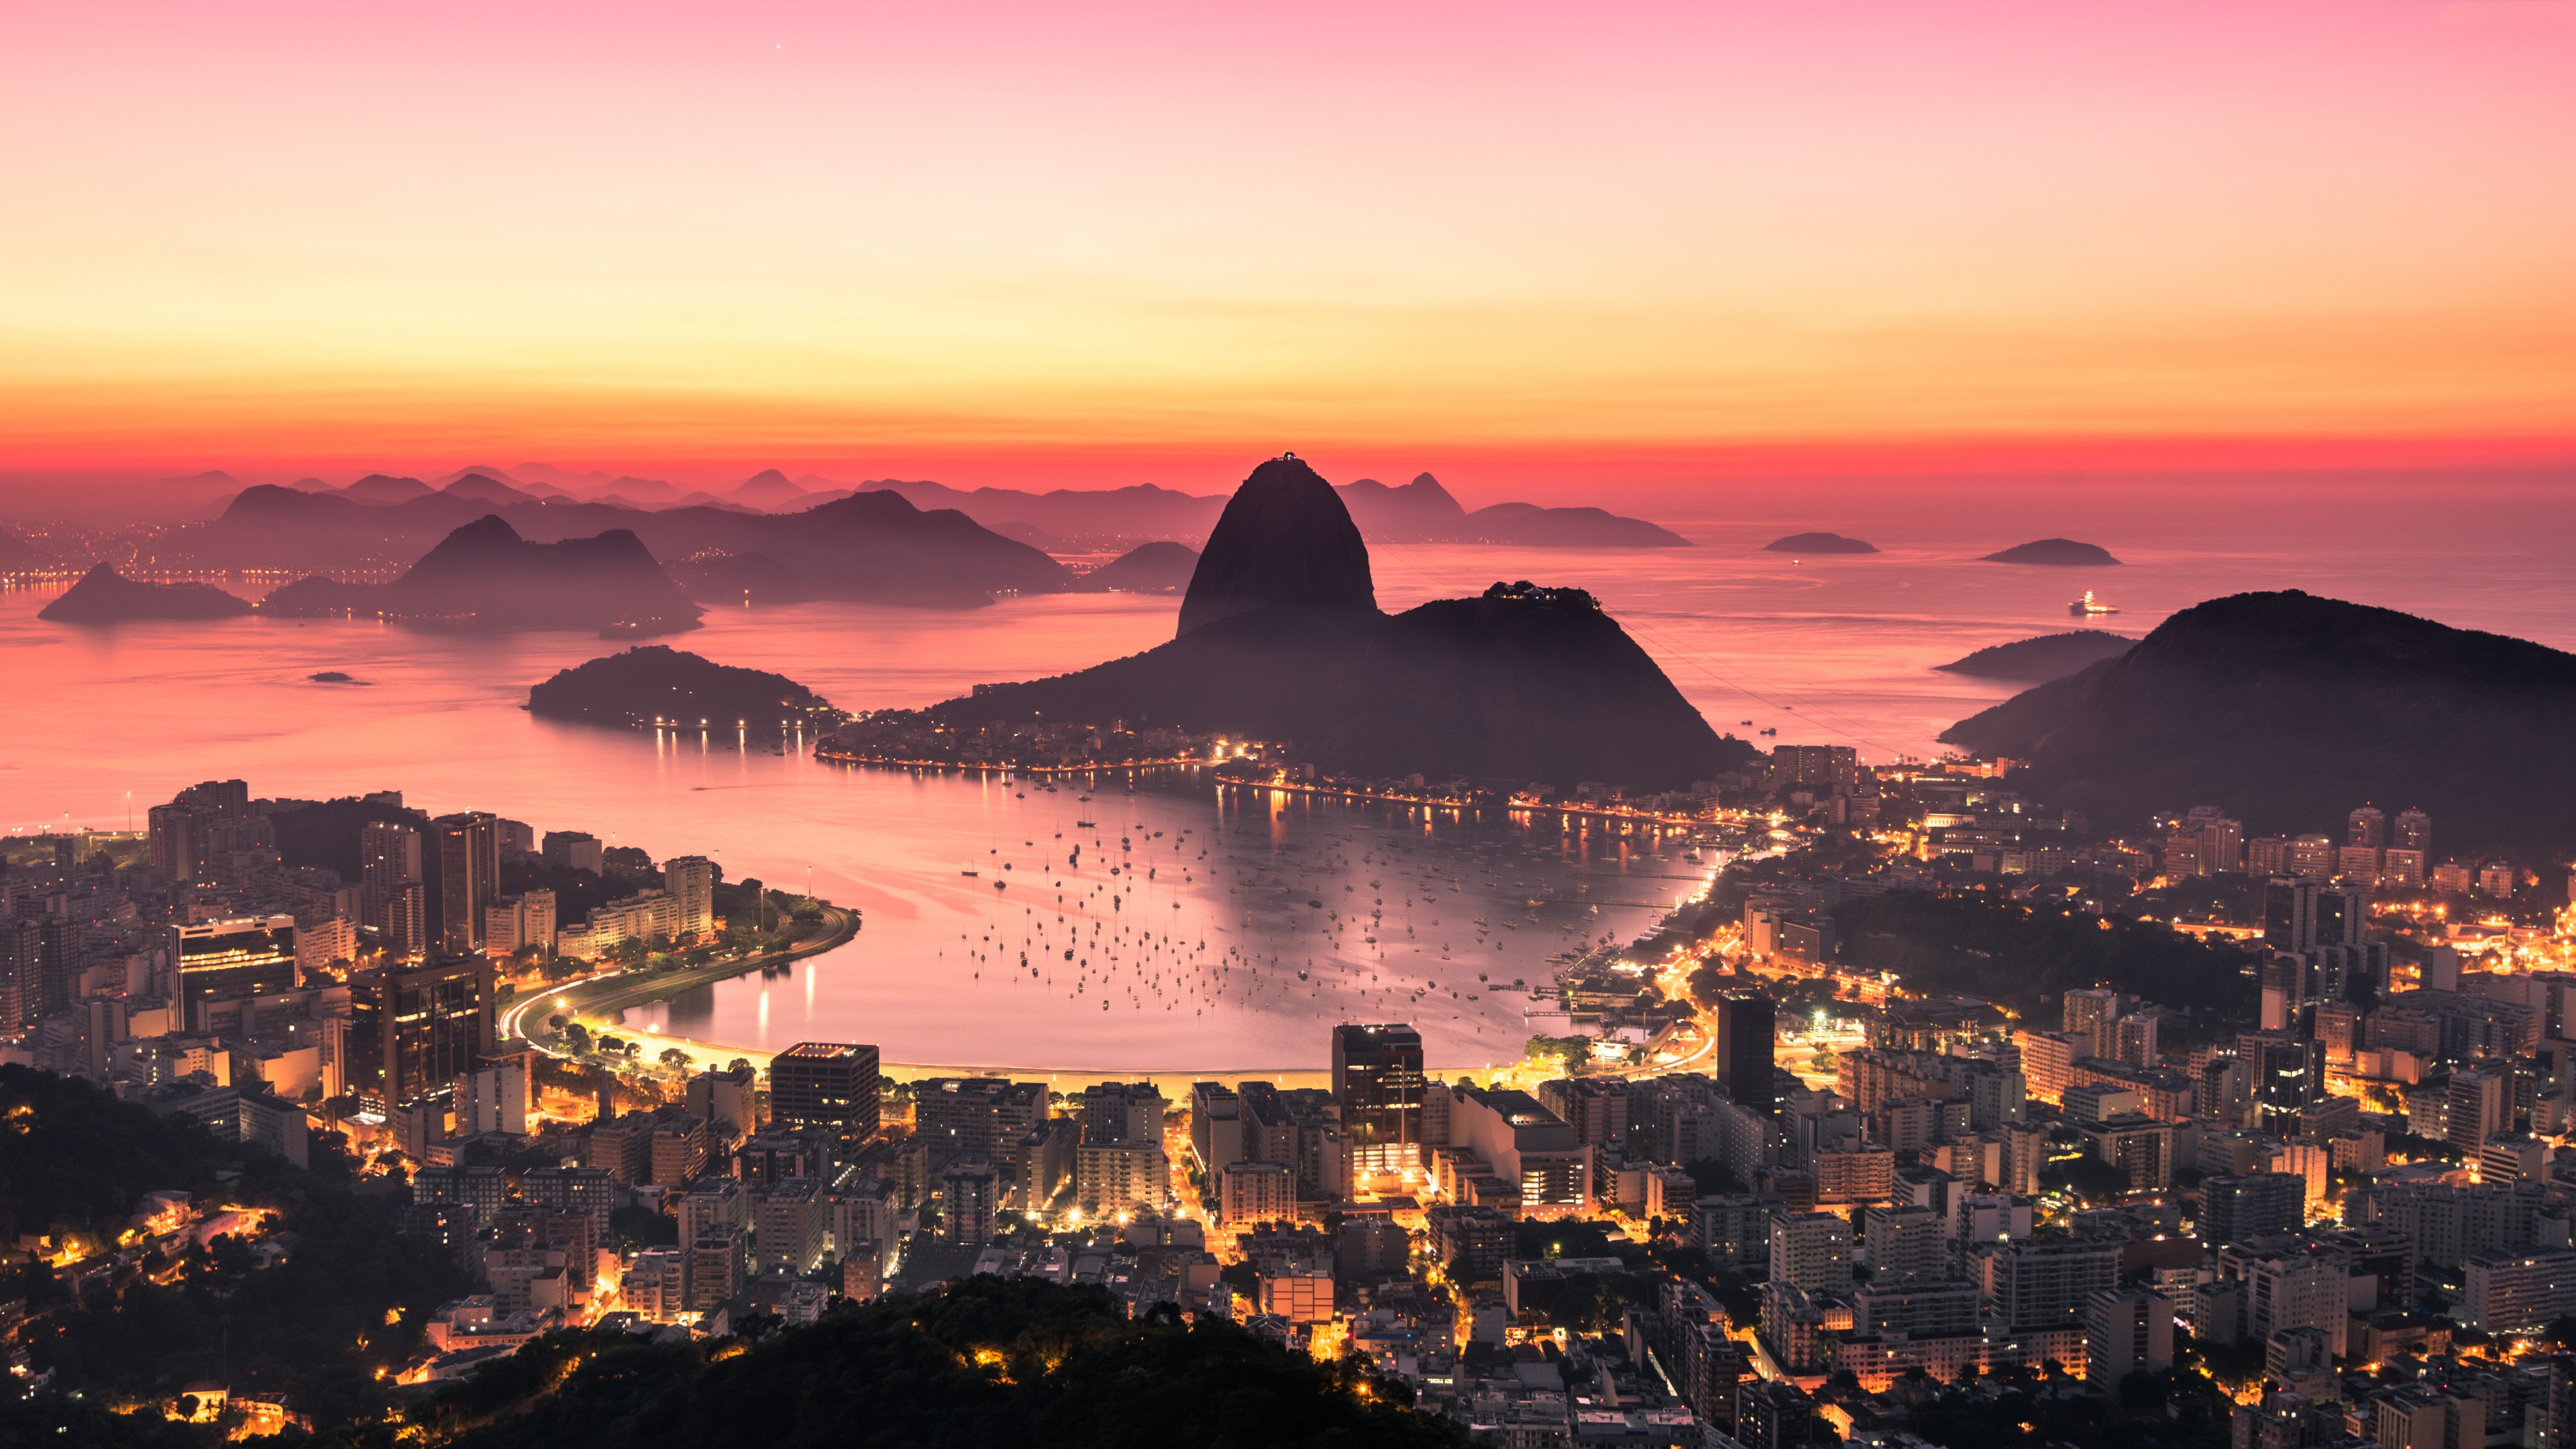 rio de janeiro sunrise 4k 1546277756 - Rio De Janeiro Sunrise 4k - world wallpapers, sunrise wallpapers, rio de janeiro wallpapers, hd-wallpapers, 4k-wallpapers